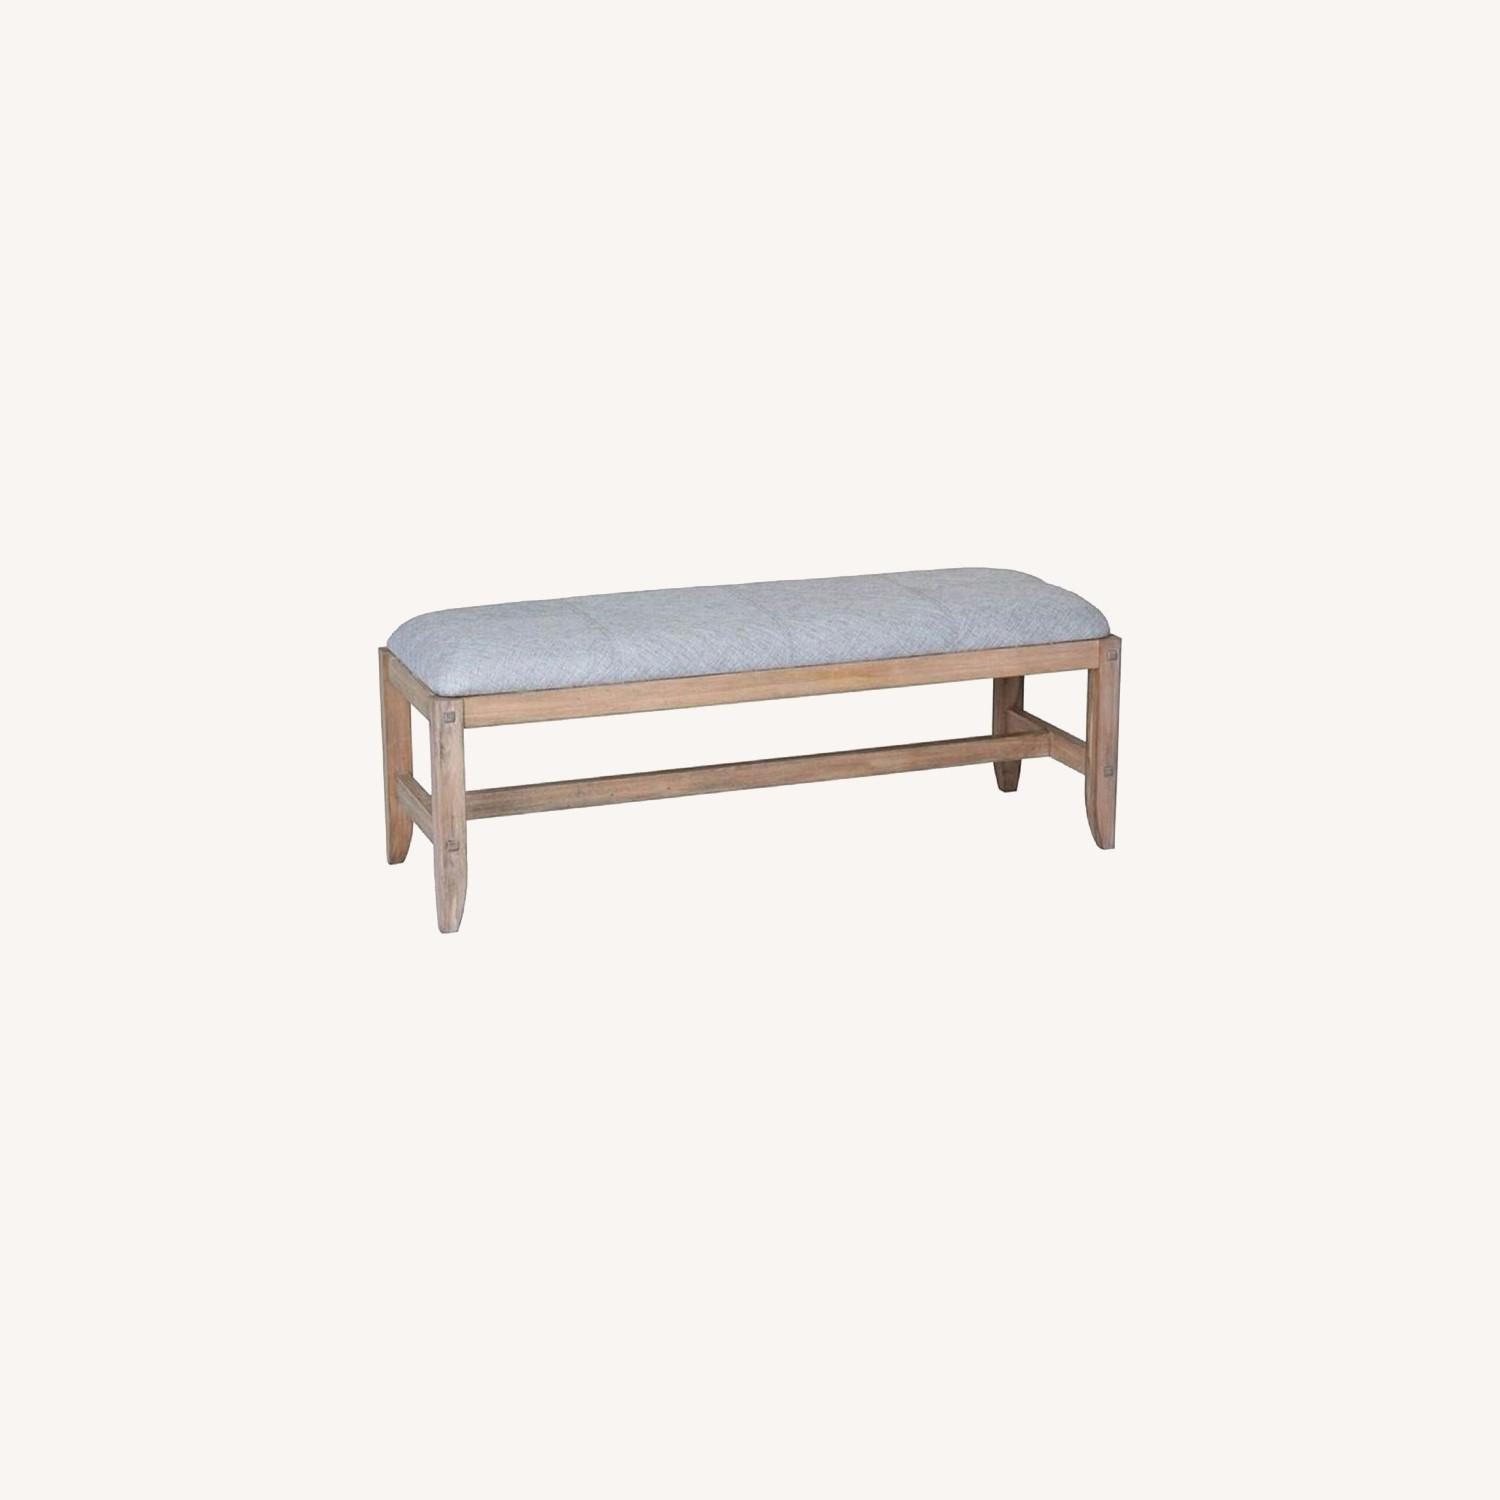 Bench In Natural White Washed Finish - image-5